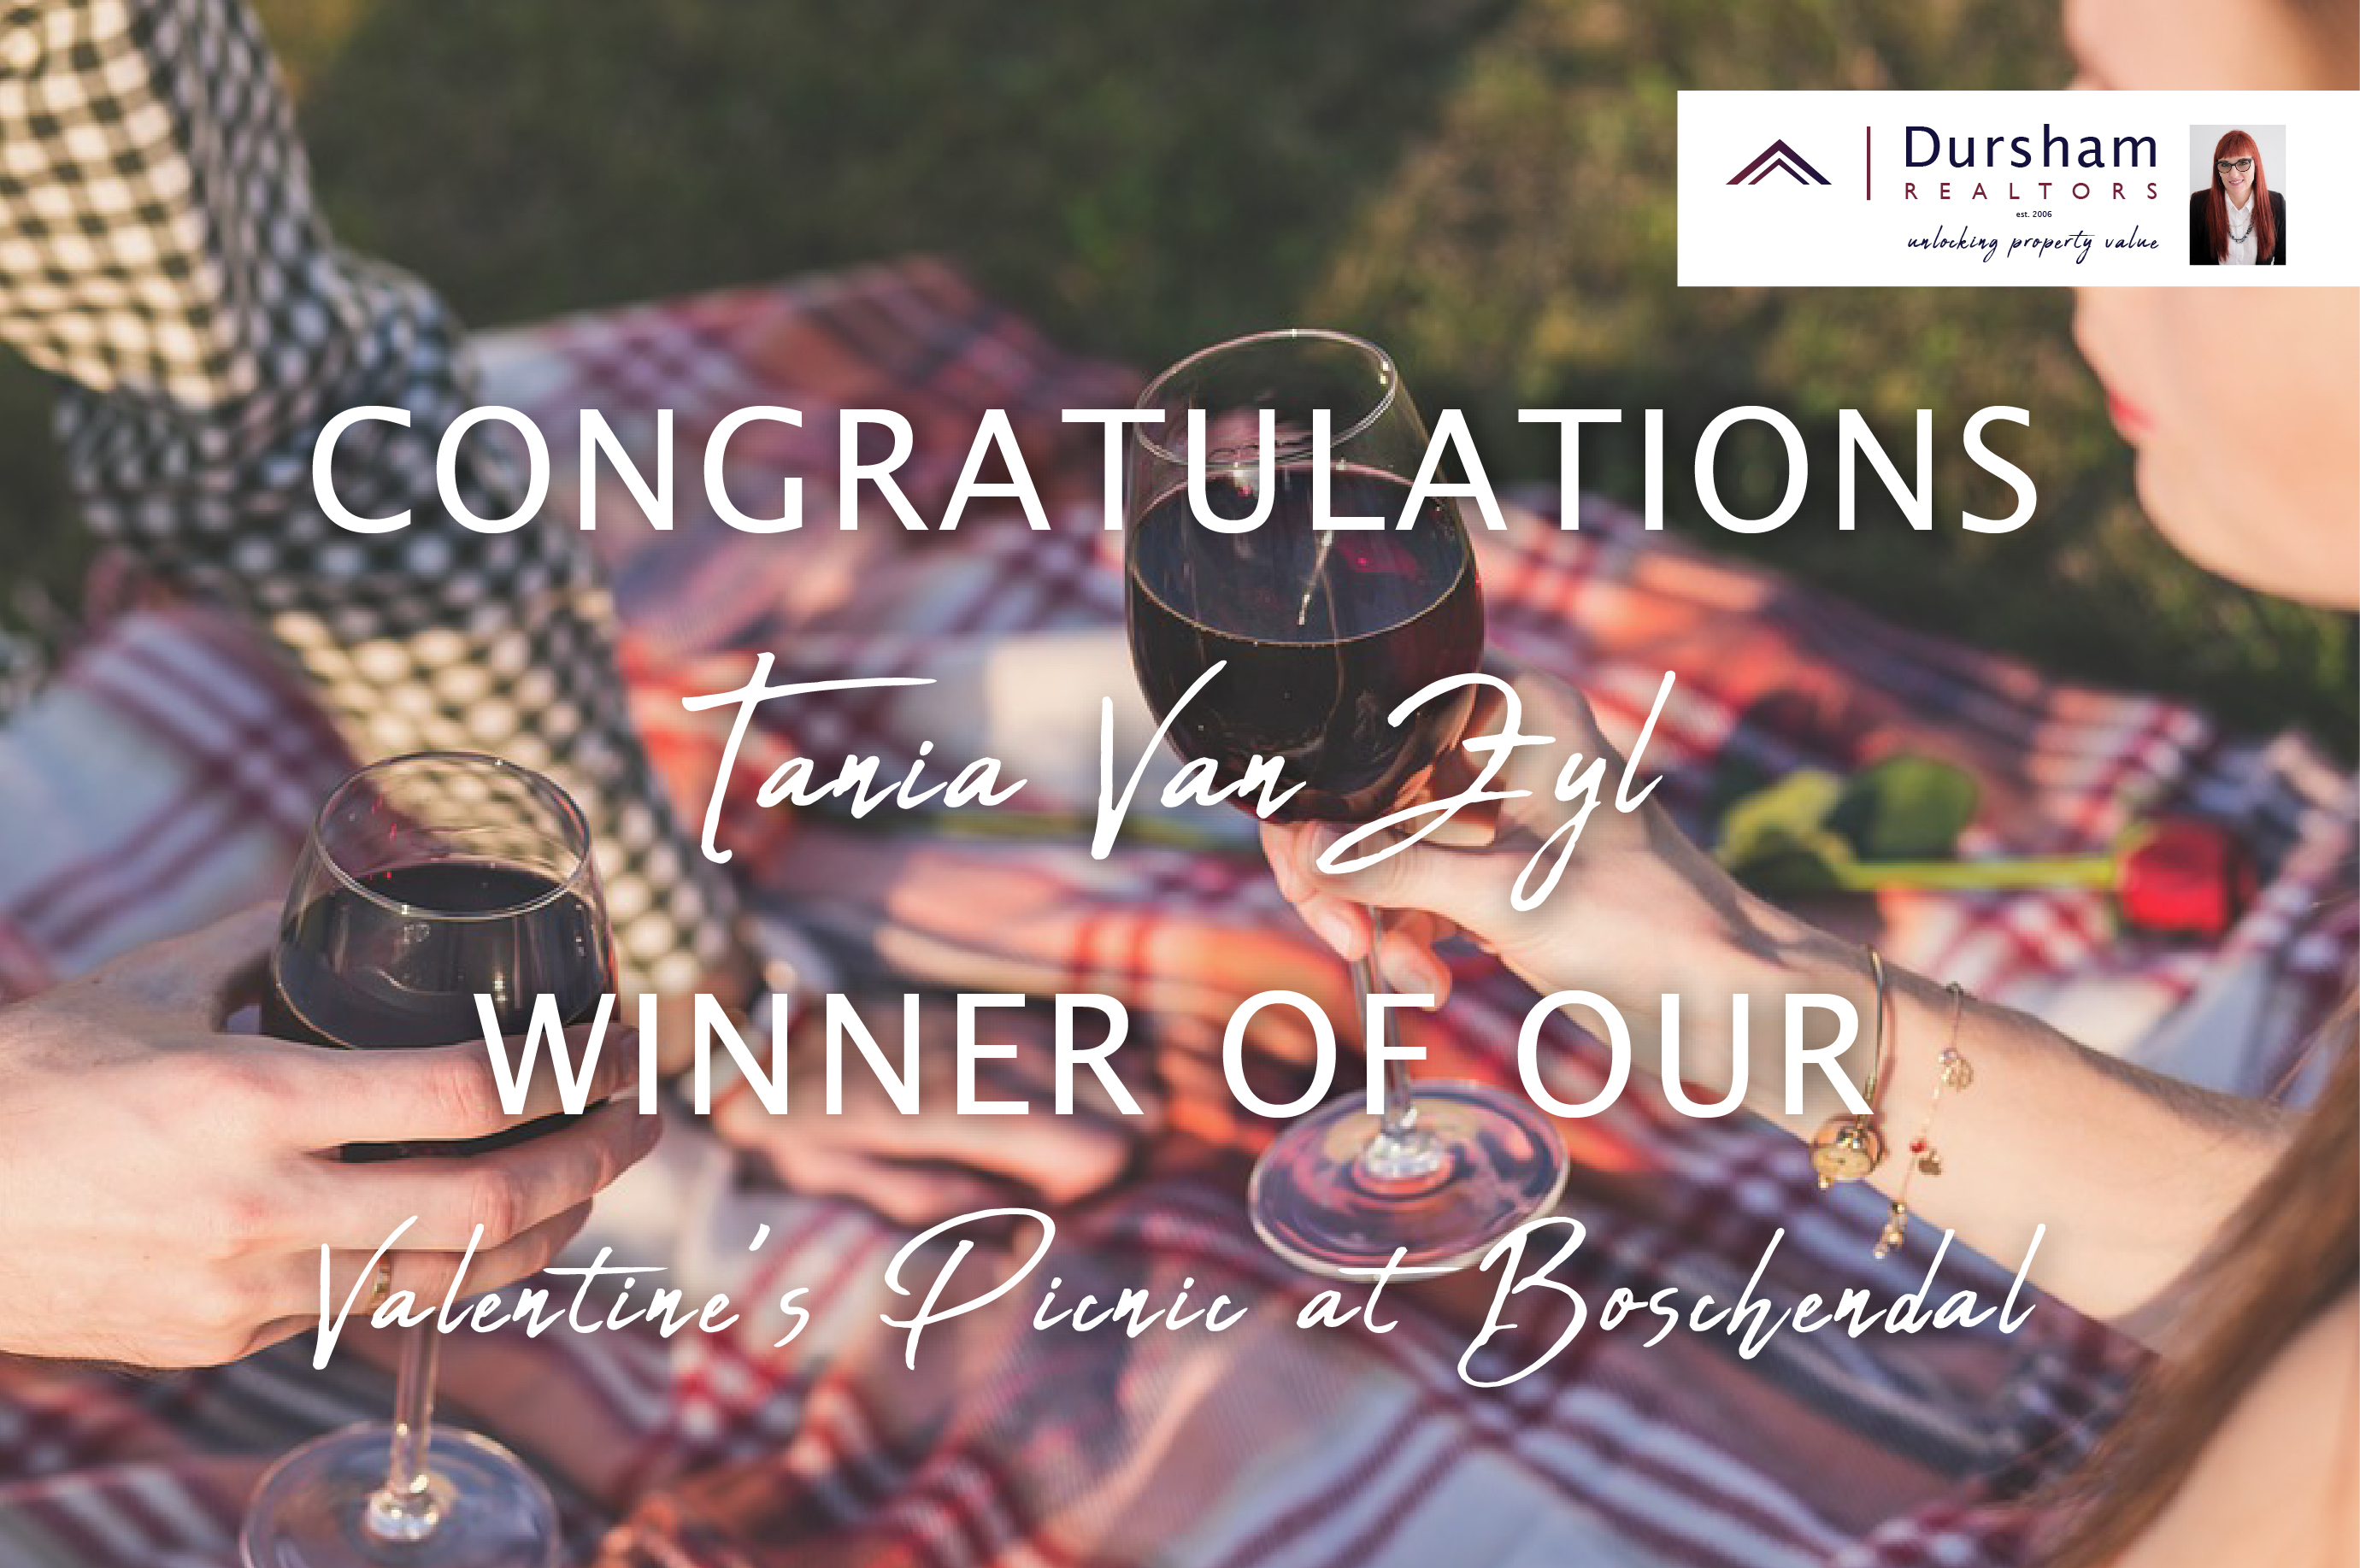 Tania van Zyl is the winner of our Valetine's Picnic at Boschendal.